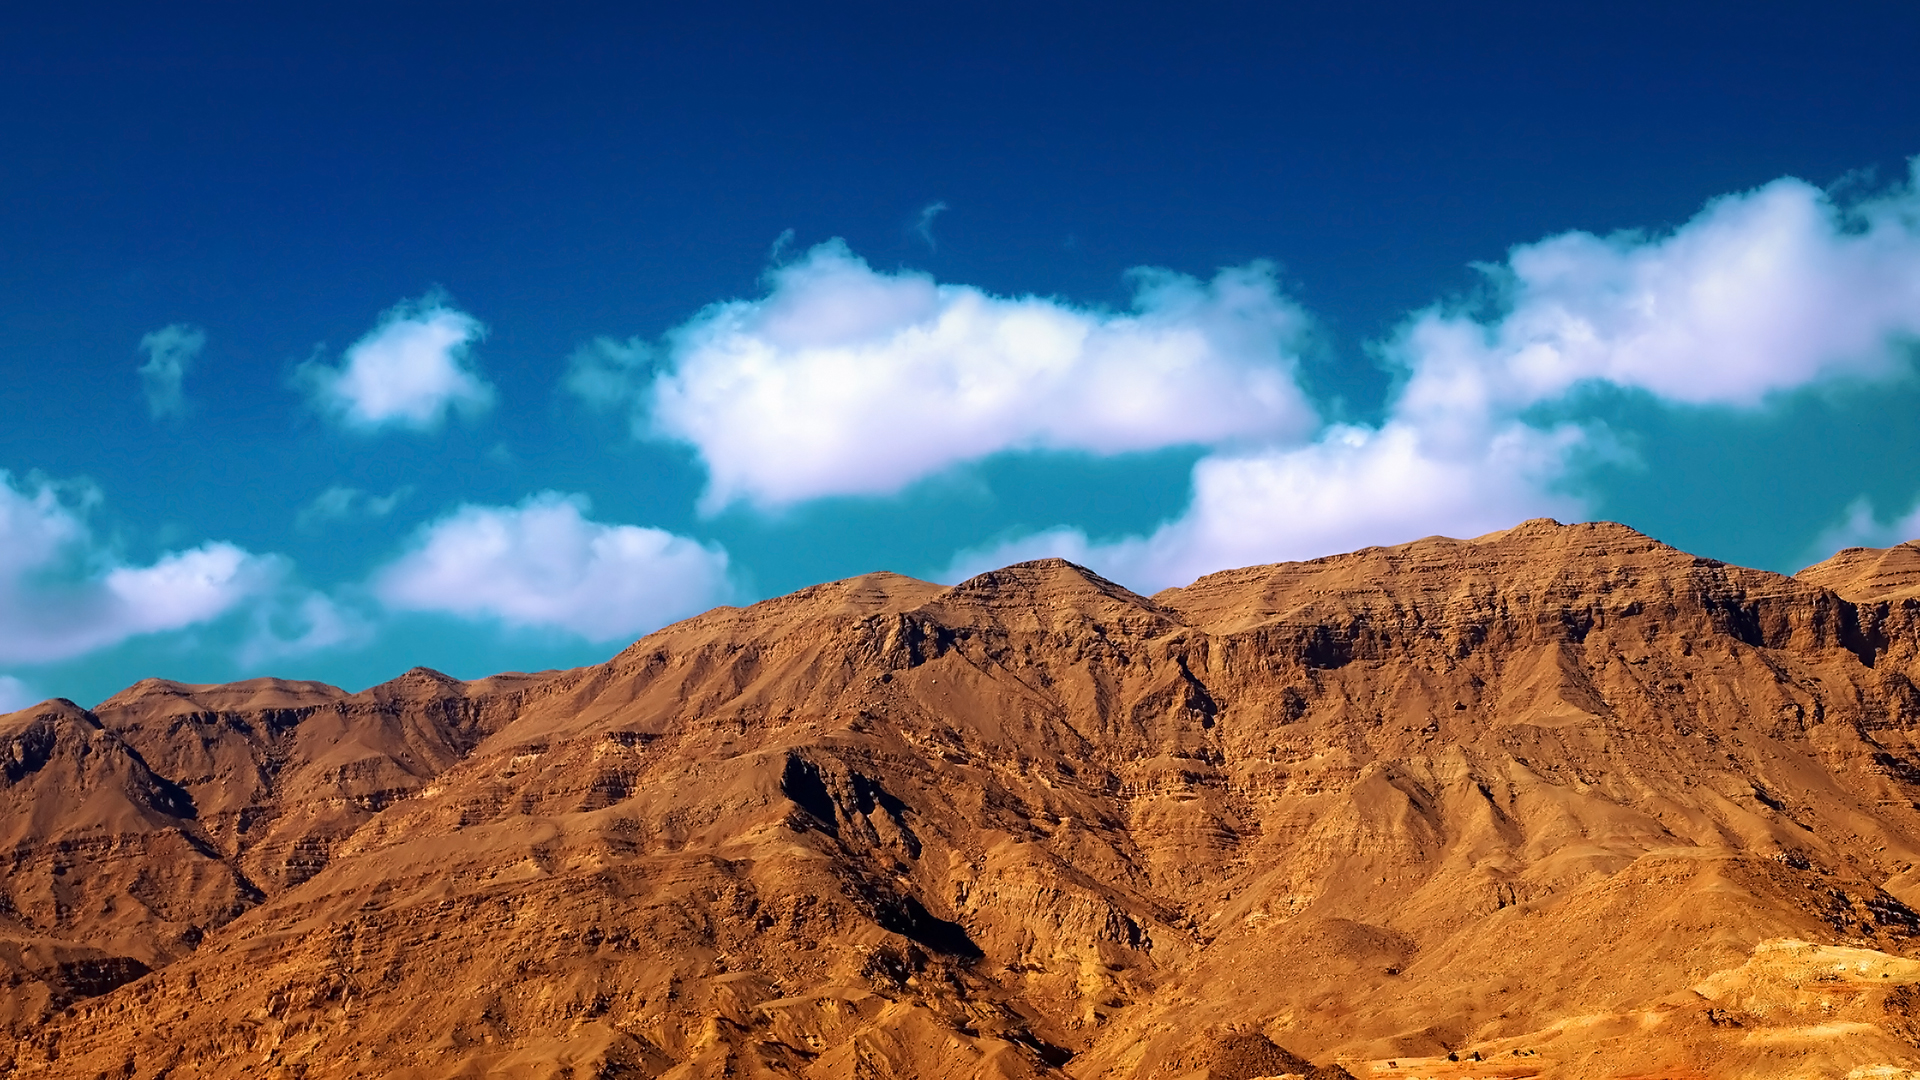 Desert-Mountains-hd-wallpaper.jpg